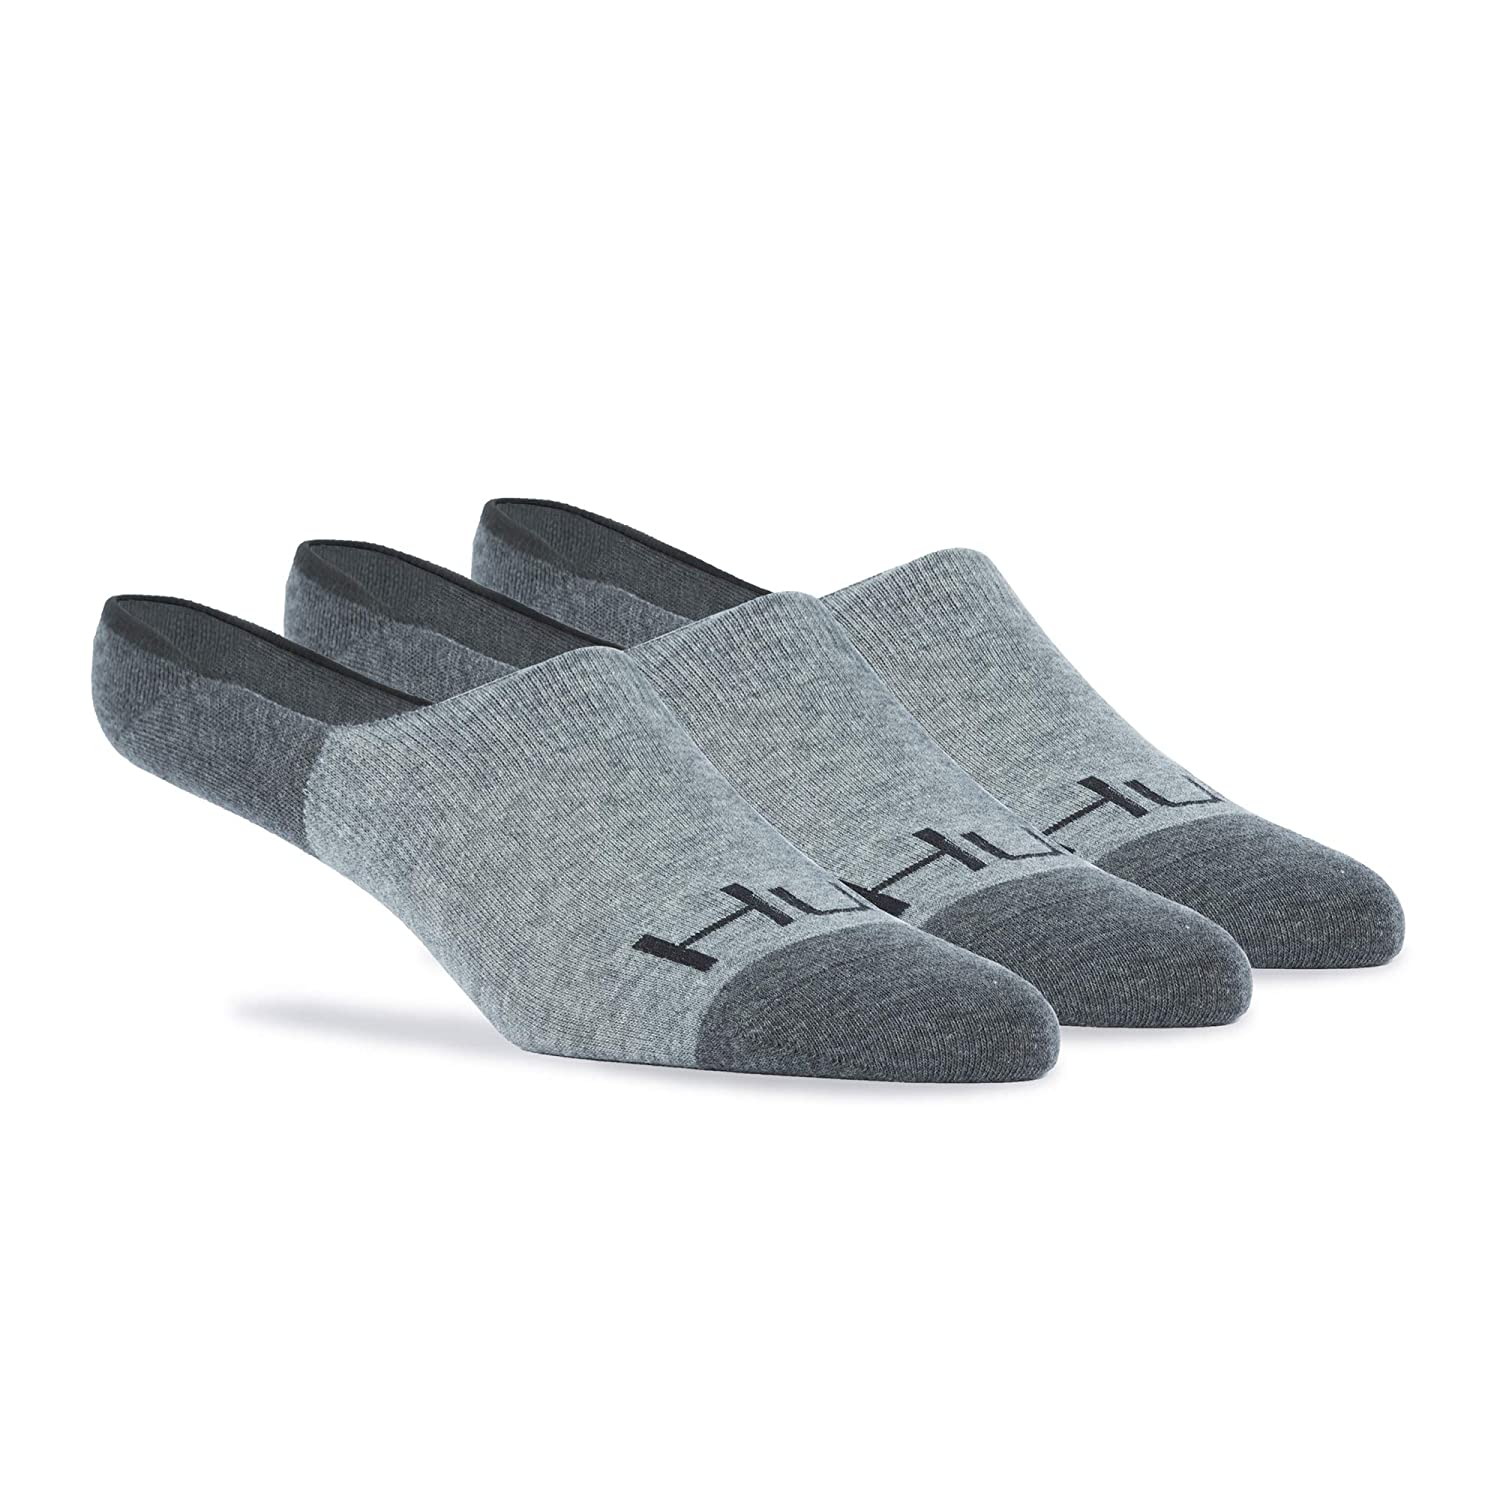 Huk Comfort No-Show Sock Heather Gray Spandex Blend Cotton